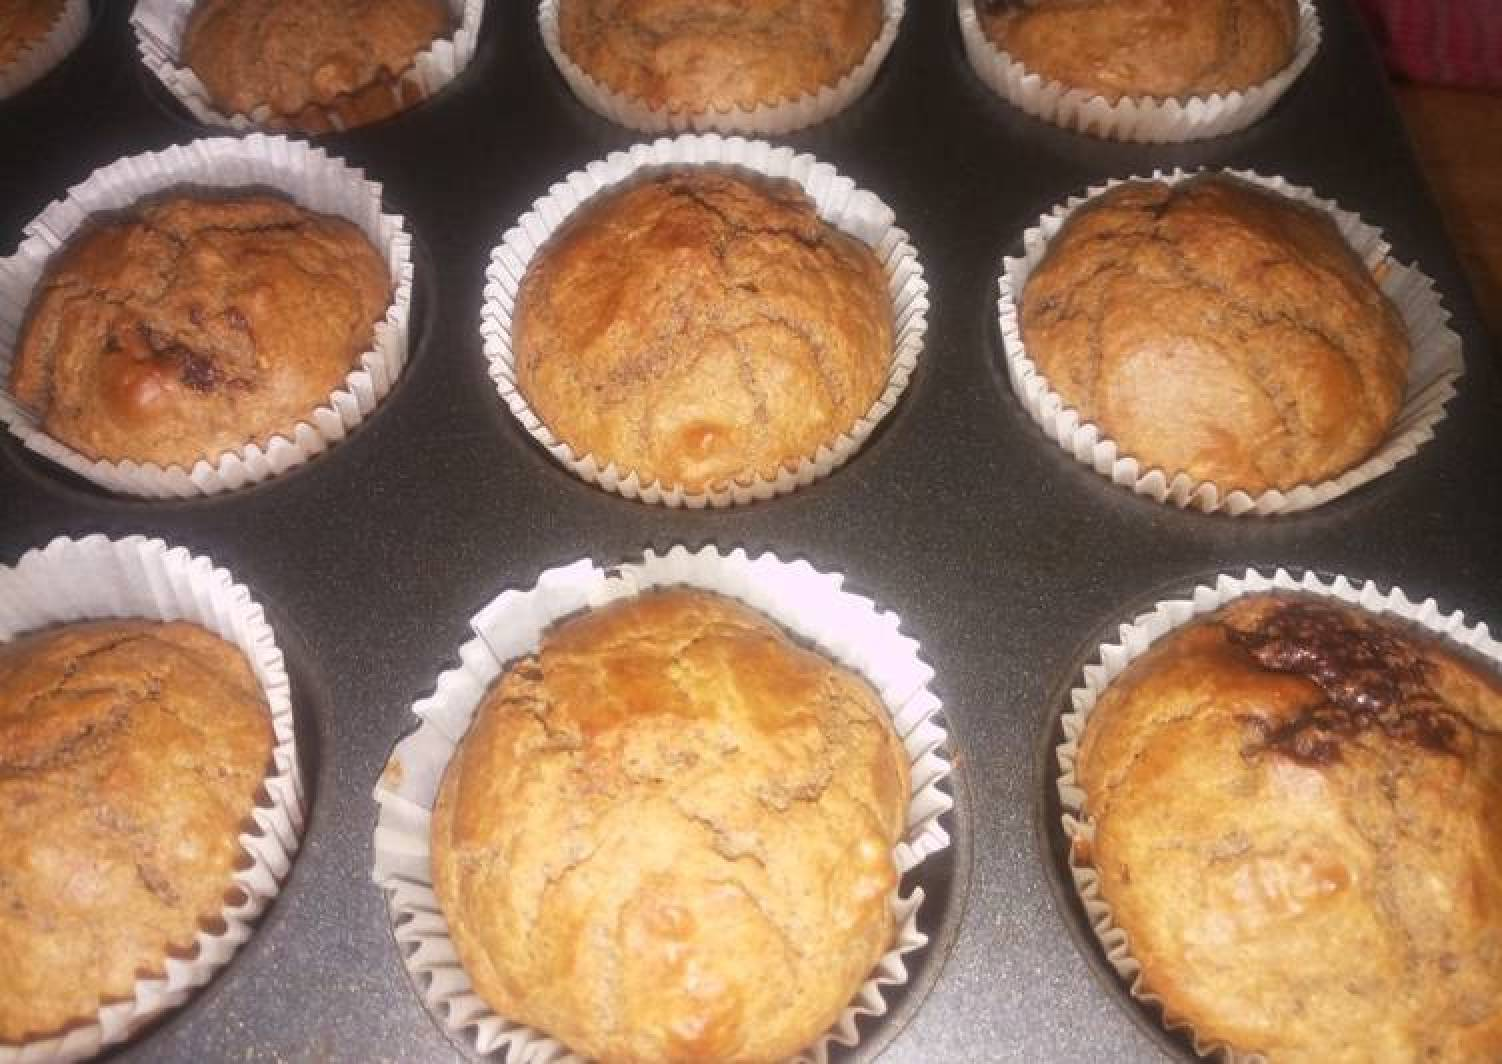 Arrowroots muffins